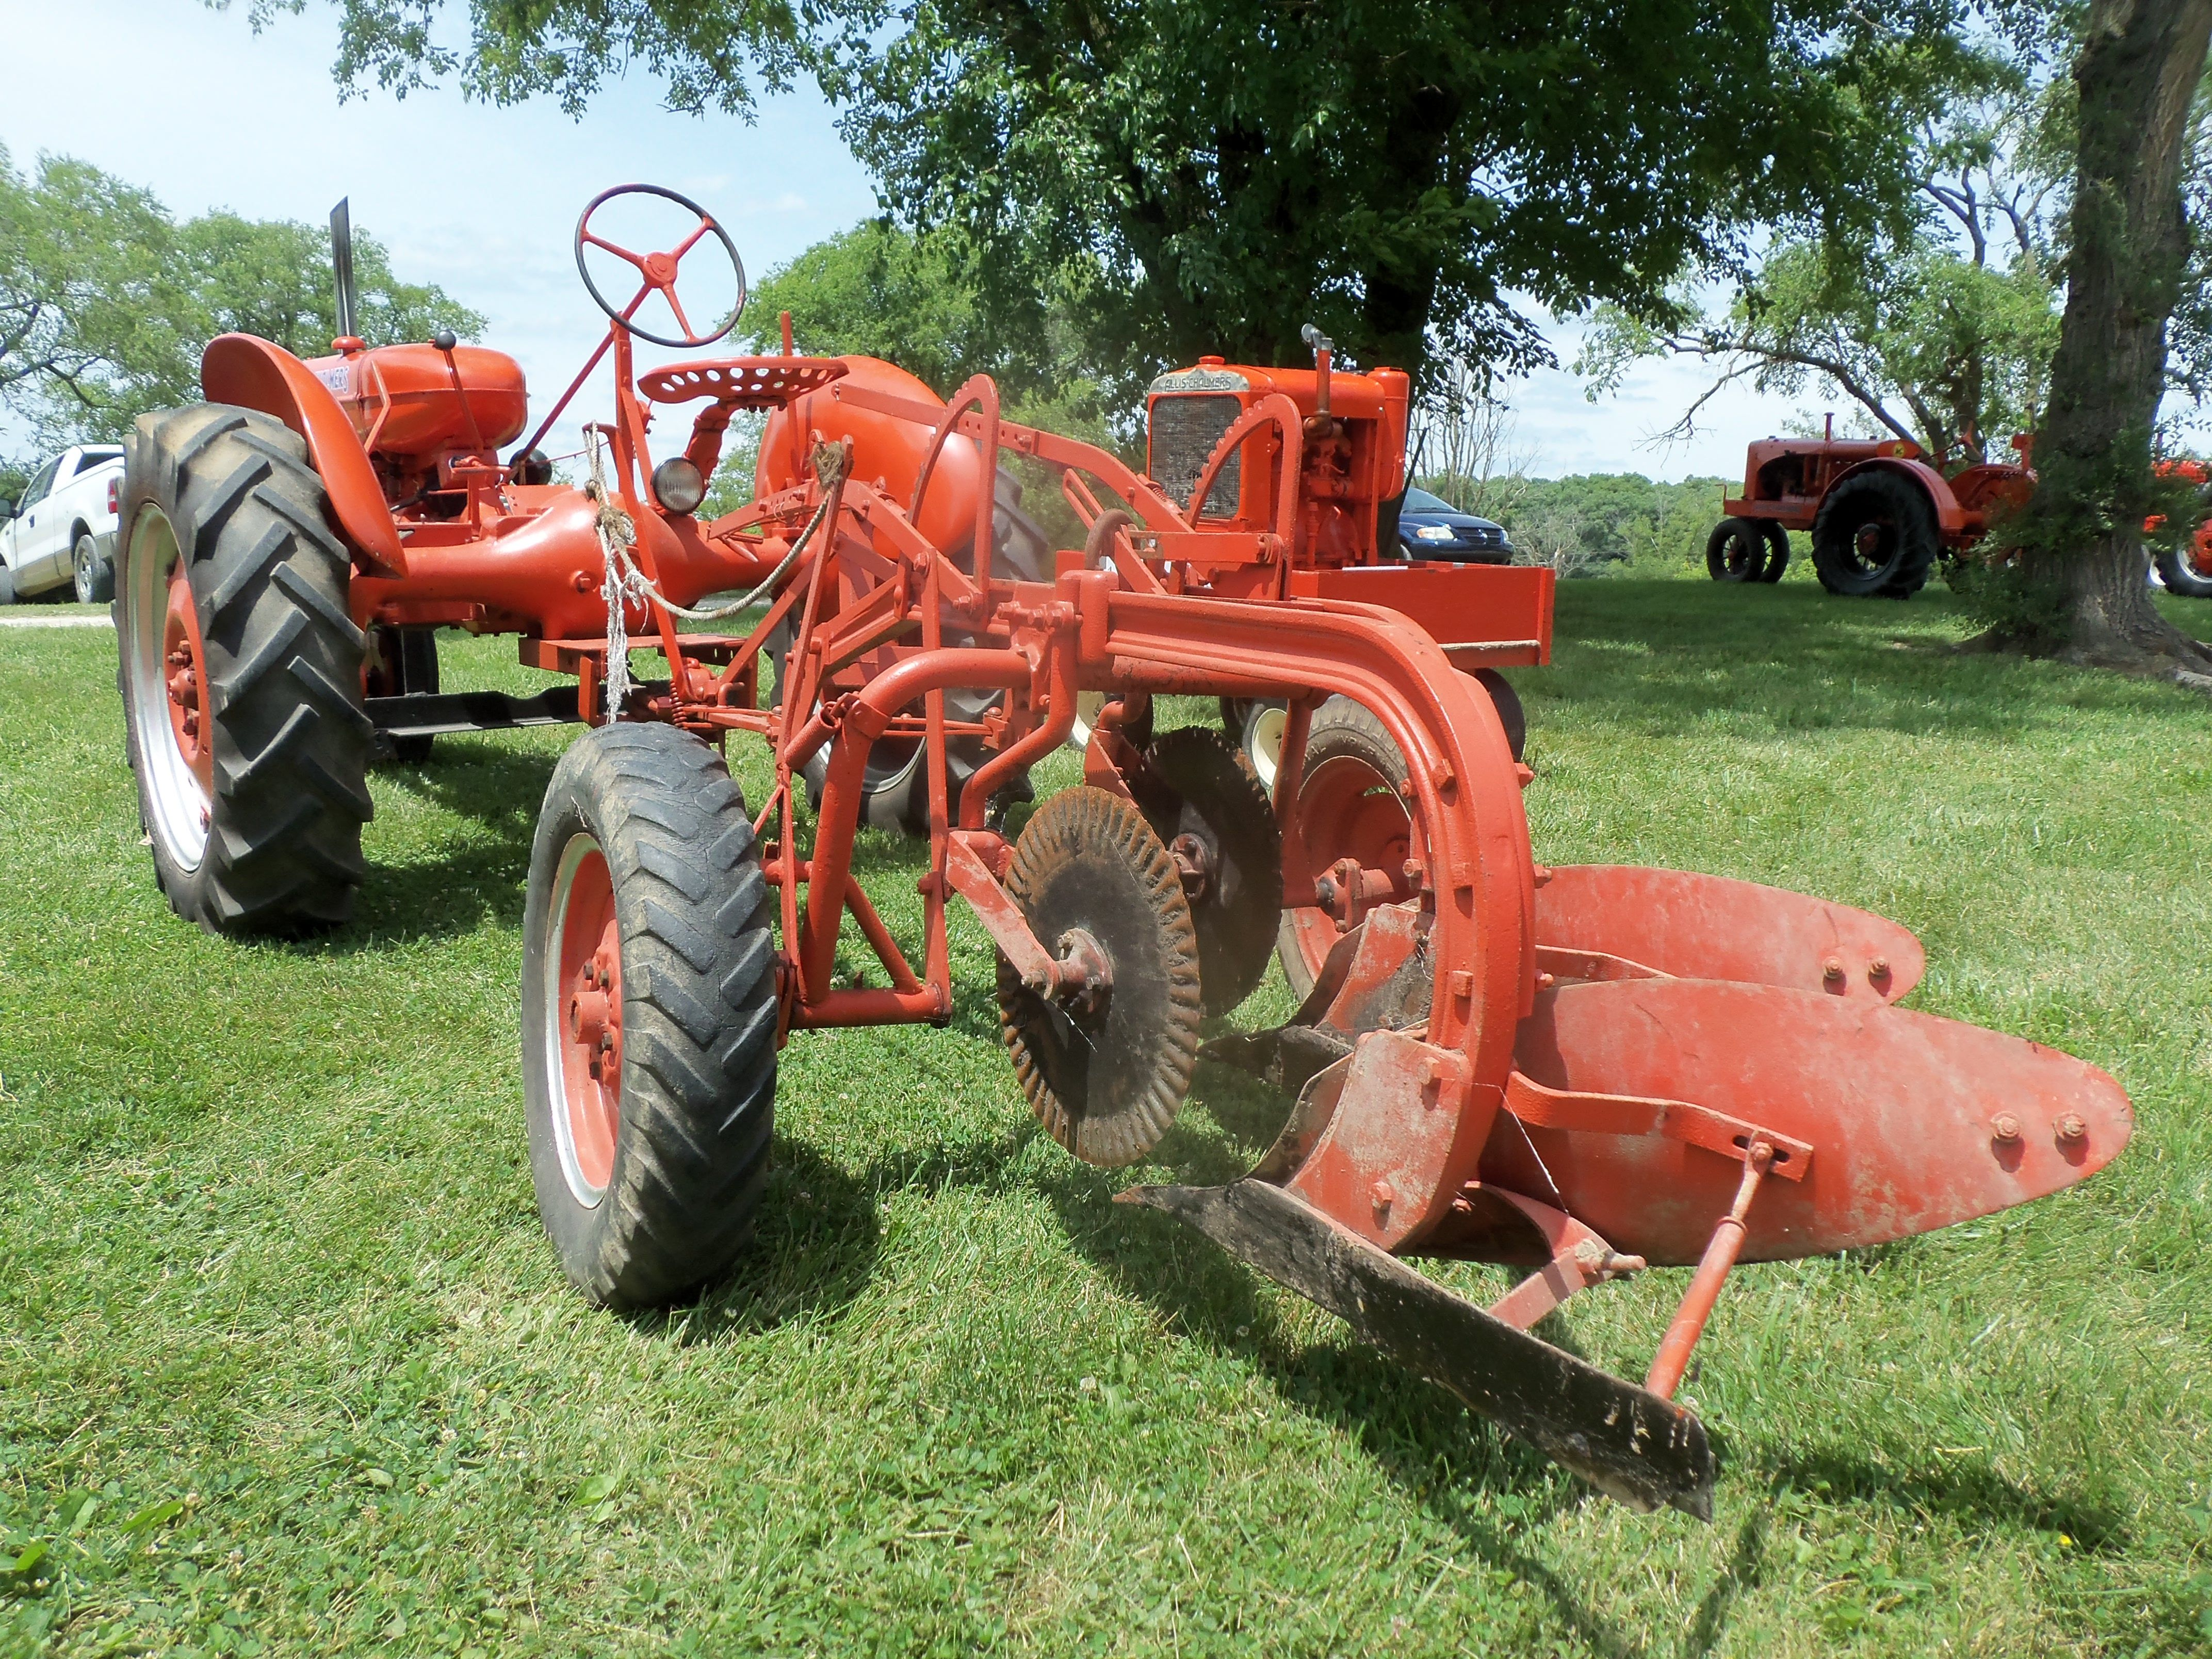 1940 Allis Chalmers RC Tractor With 2 Bottom Plow